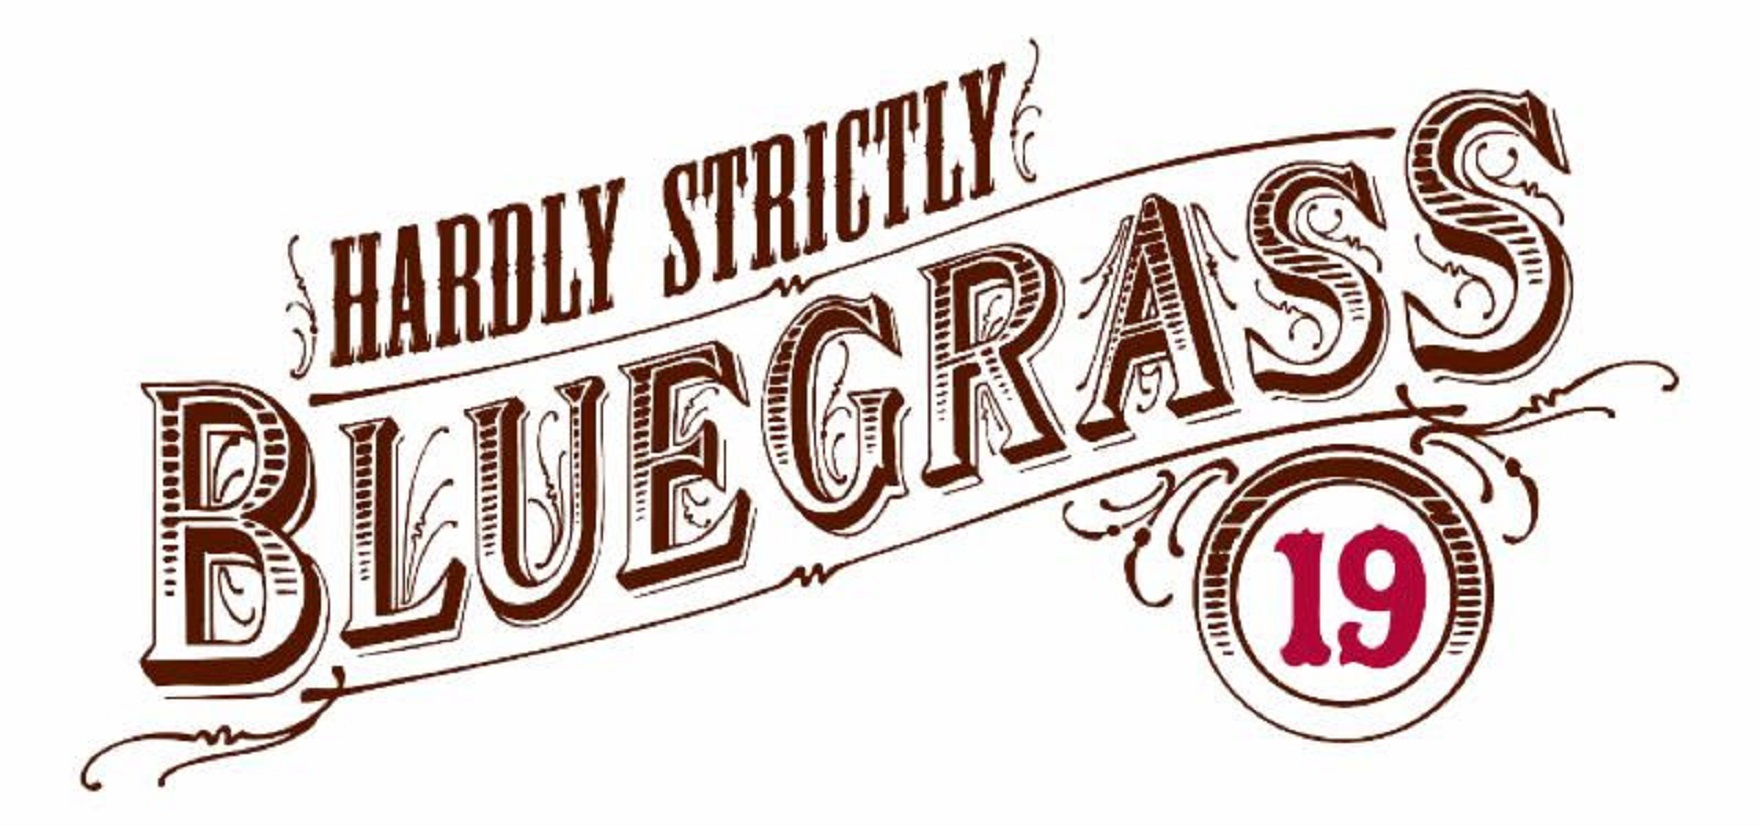 Hardly Strictly Bluegrass 2019 Daily Schedule Released